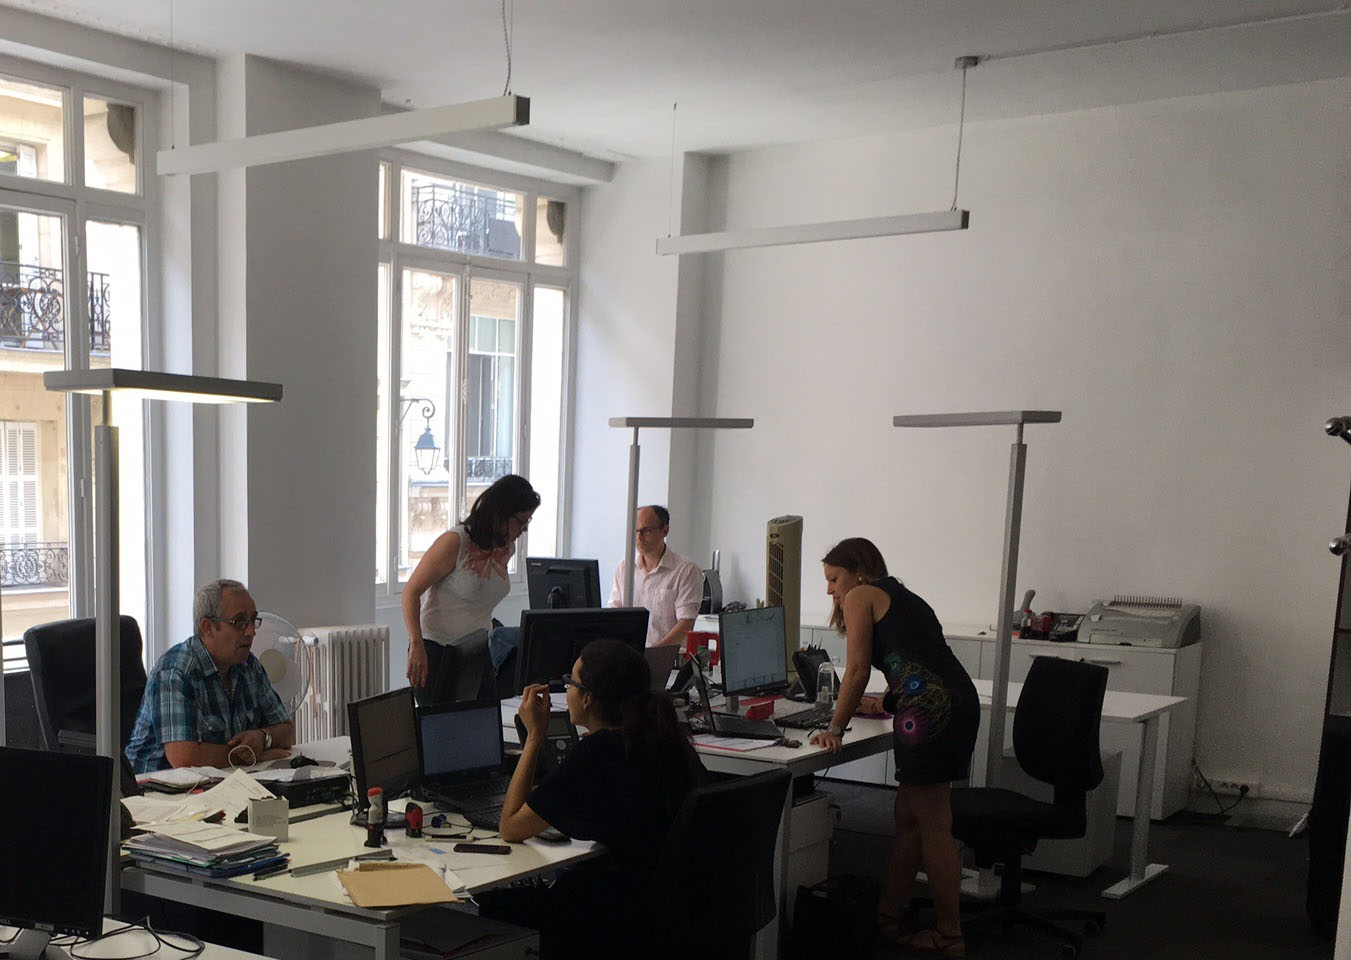 Works at the paris agency u voxoa